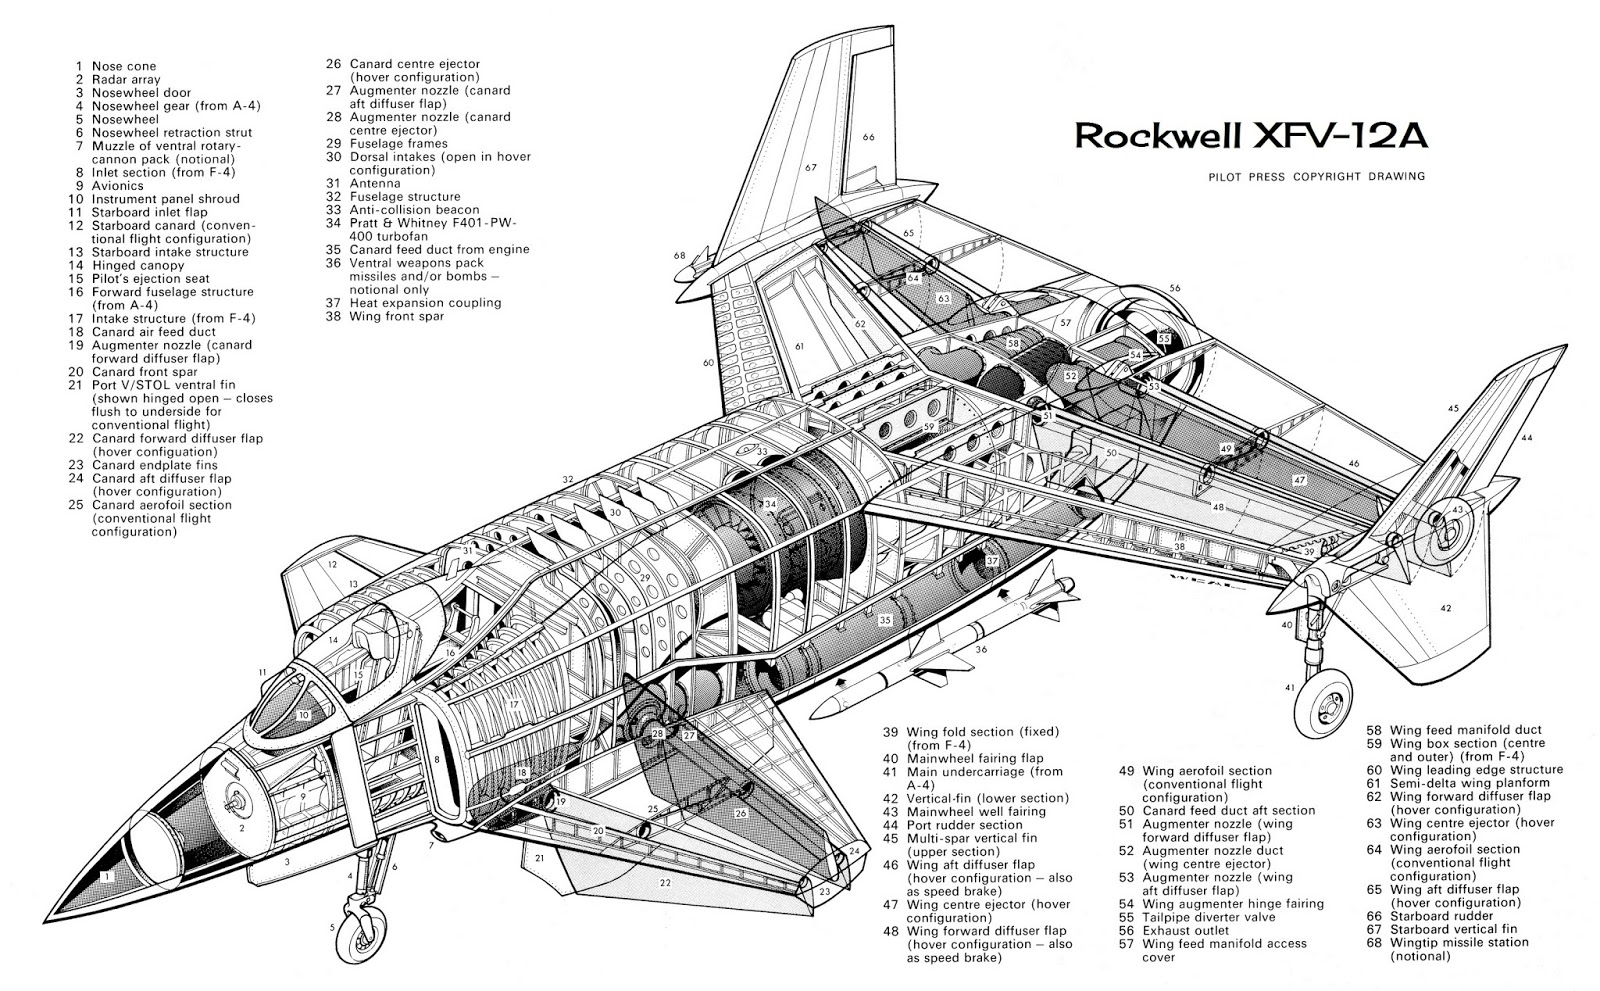 Rockwell XFV-12A